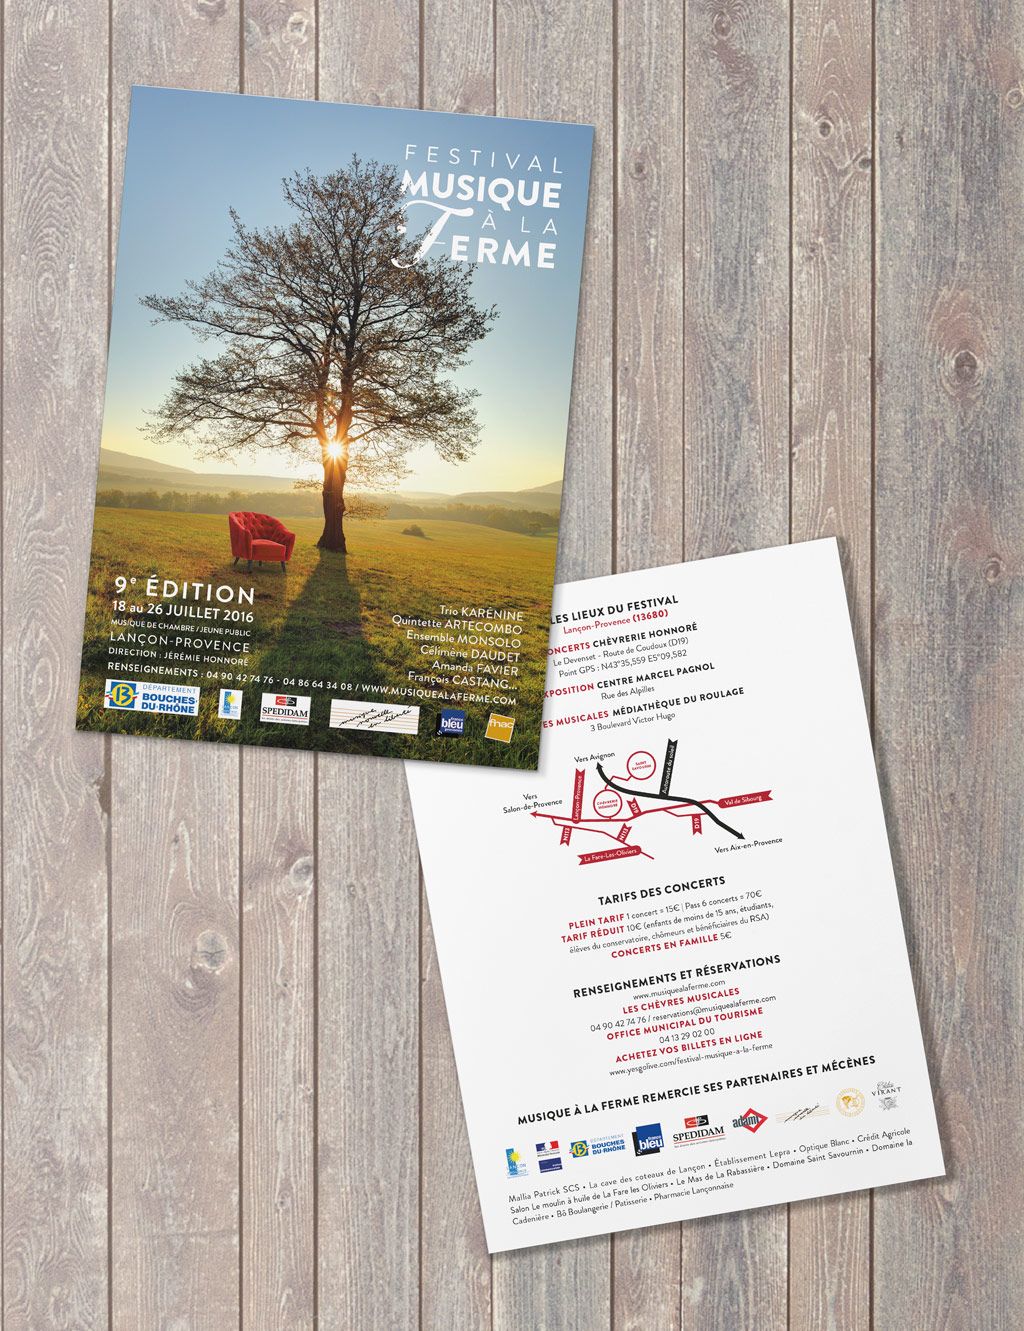 Flyer for the Classical music Festival Musique à la Ferme during the 2016 summer in Provence © Calliopé Studio, Marine Pavé 2016